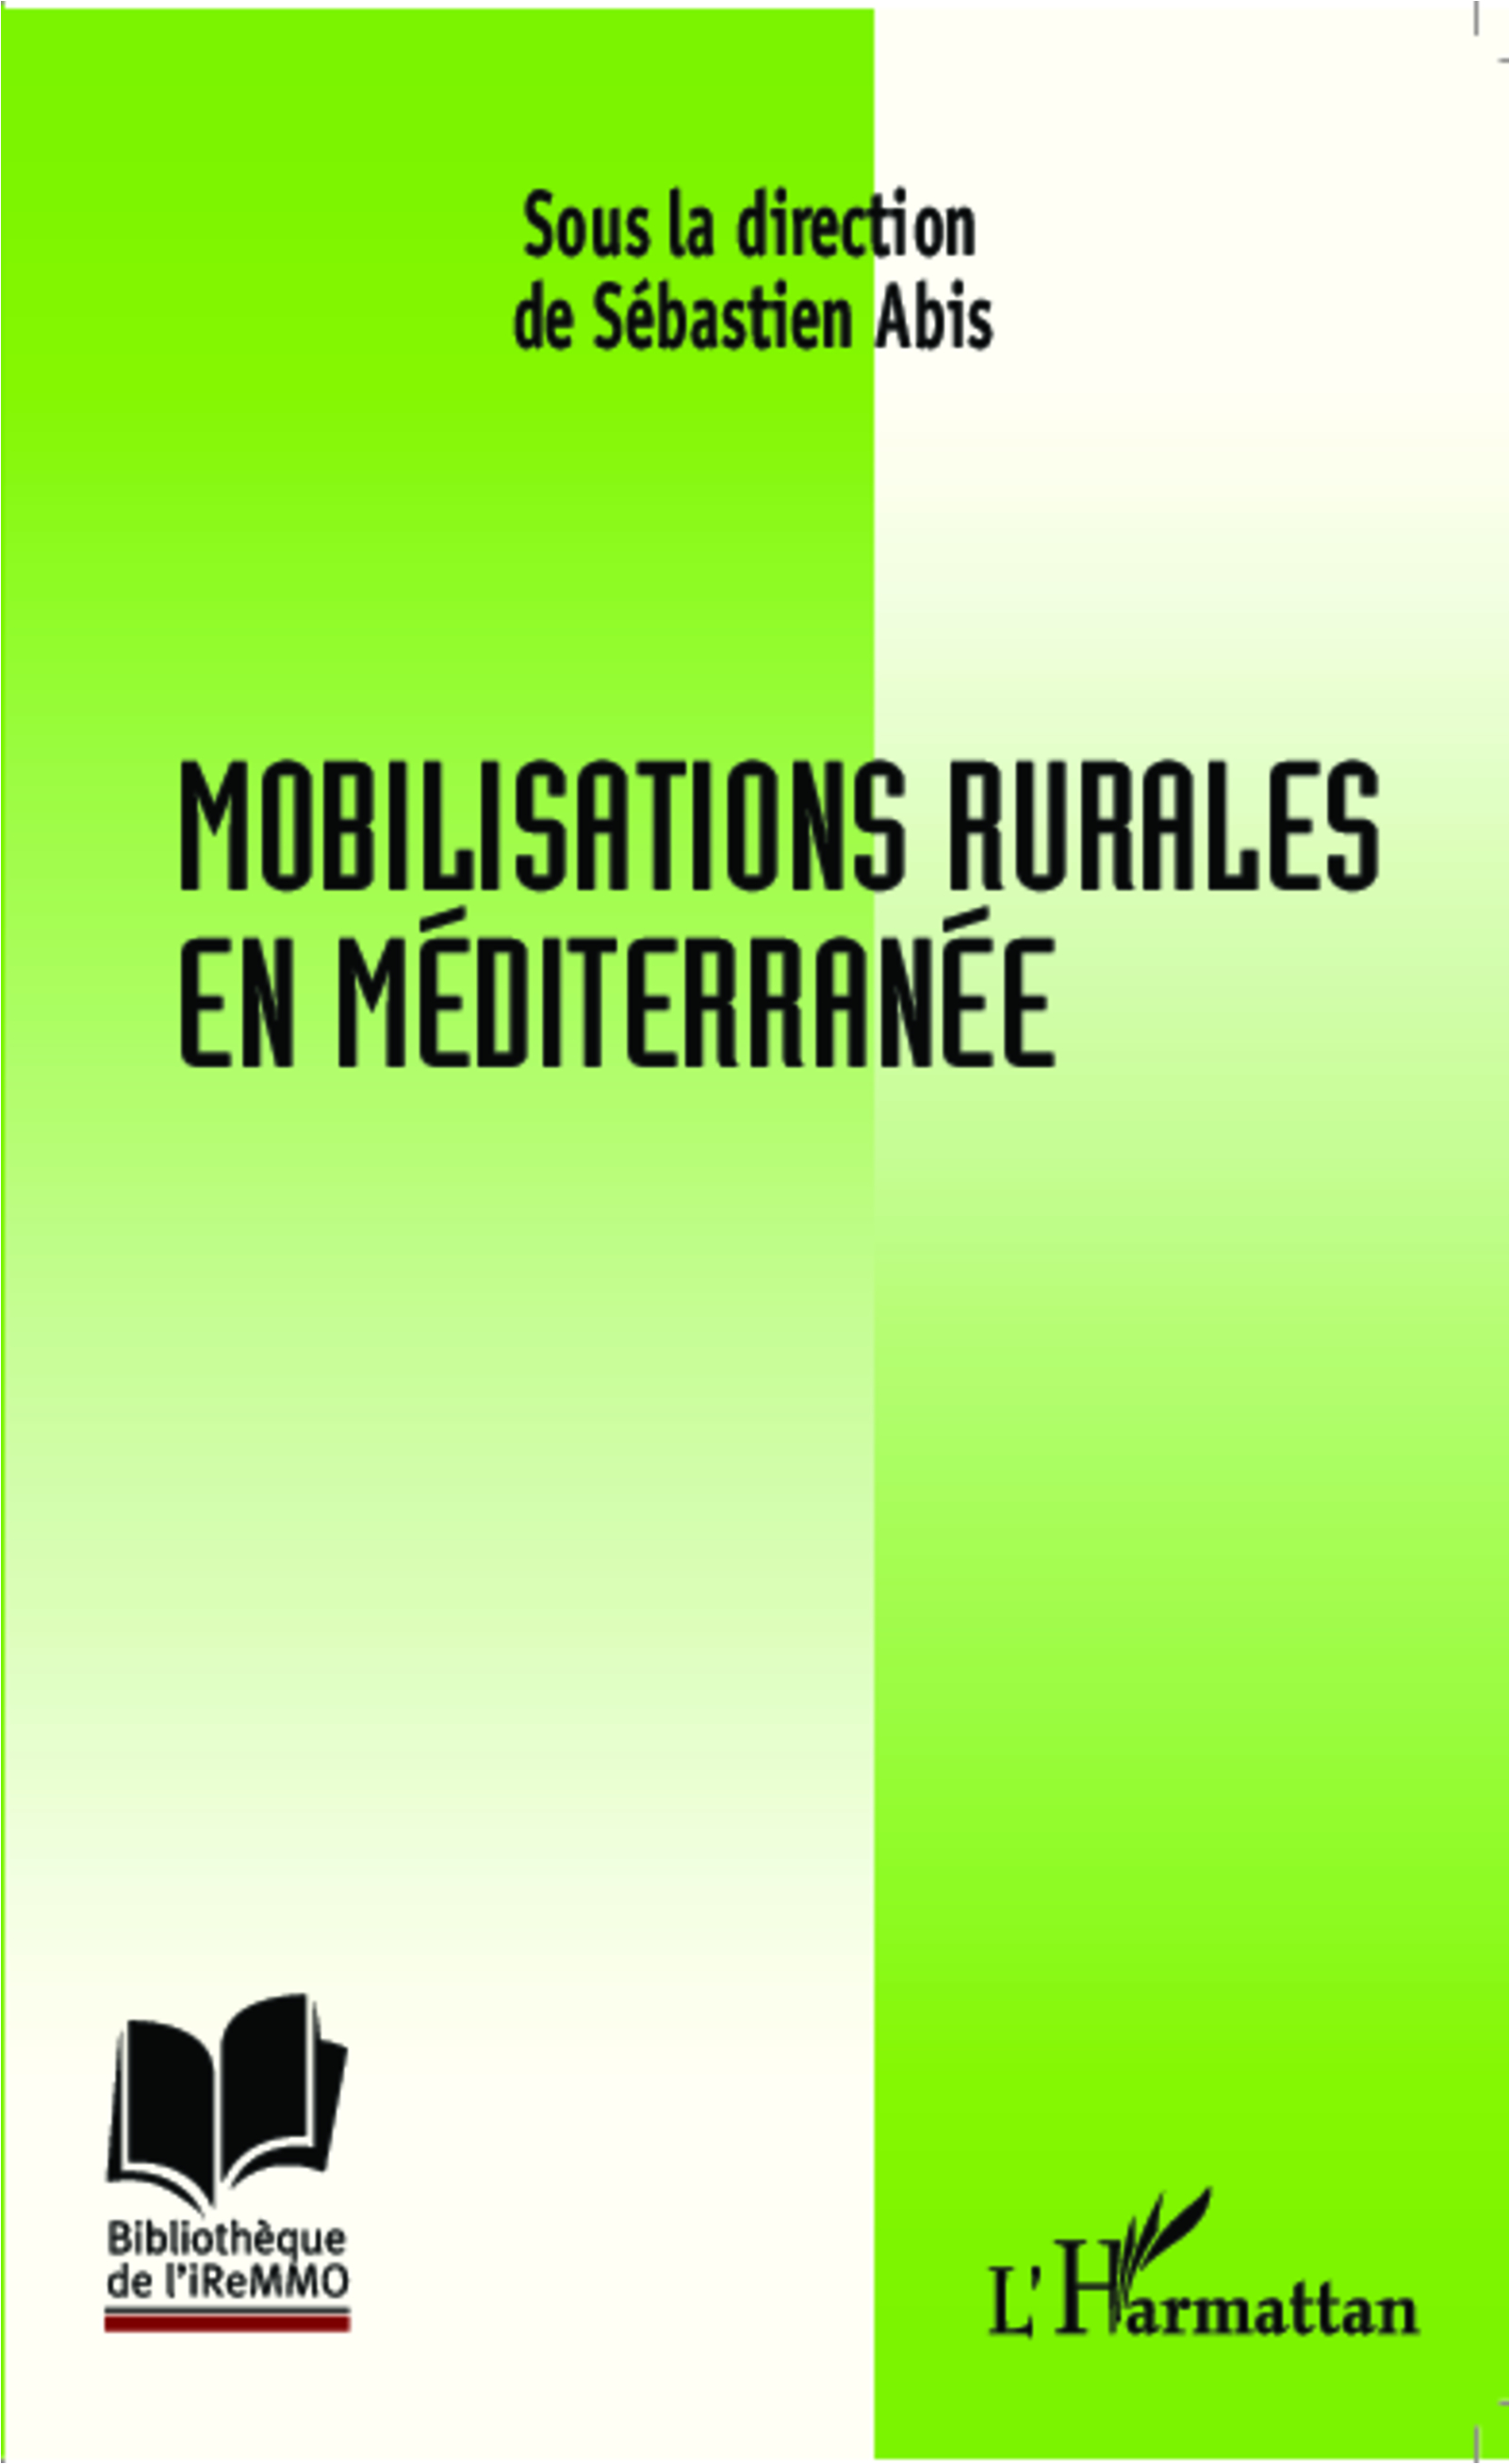 Mobilisations rurales